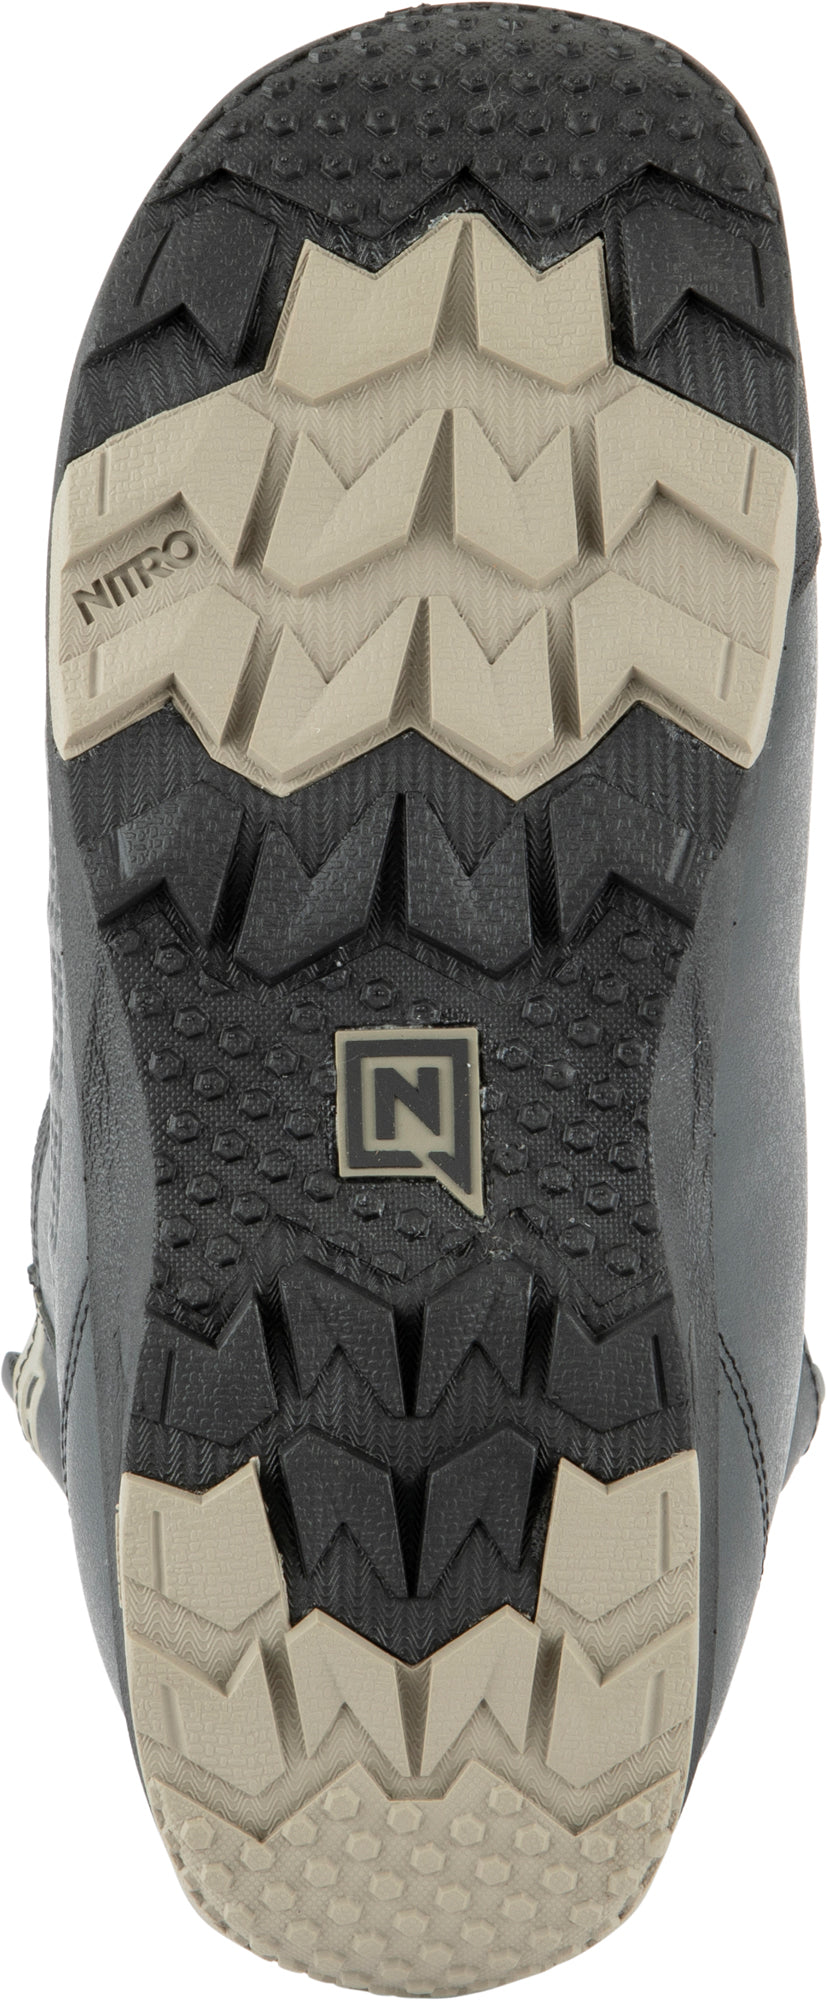 2021 Nitro Thunder Tls Snowboard Boots in Sand Black and Army